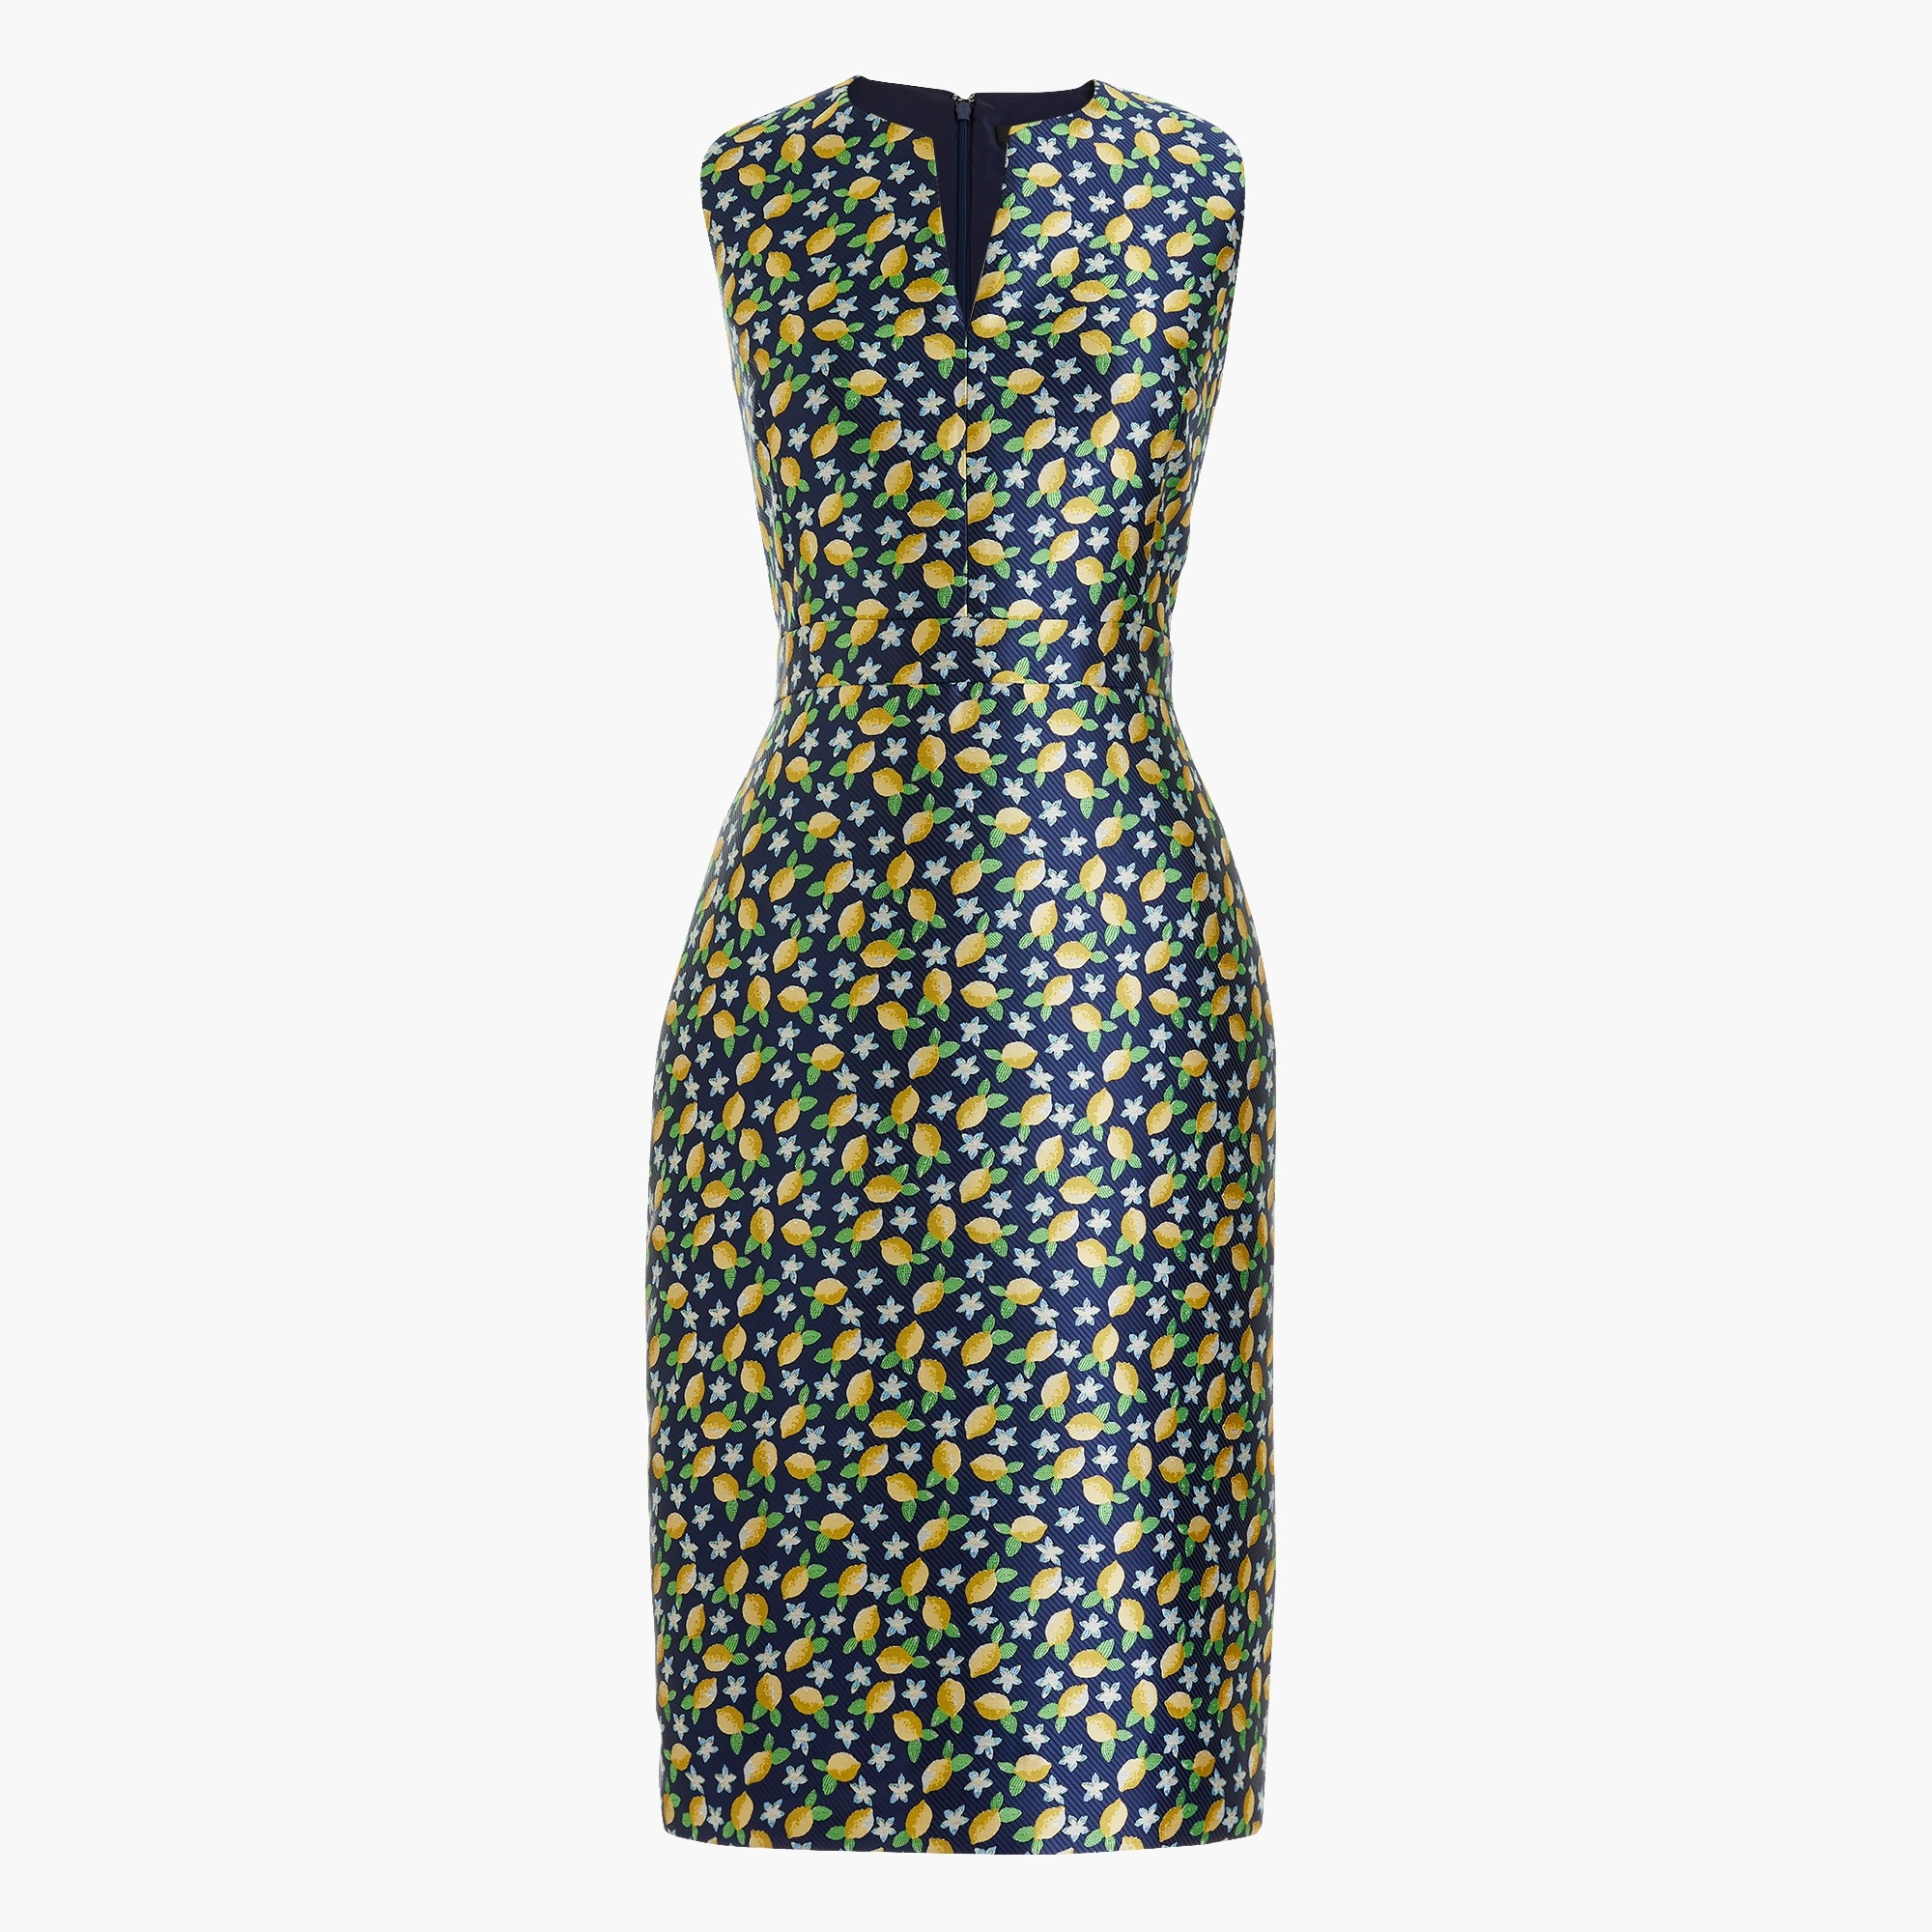 V-neck sheath dress  in lemon jacquard